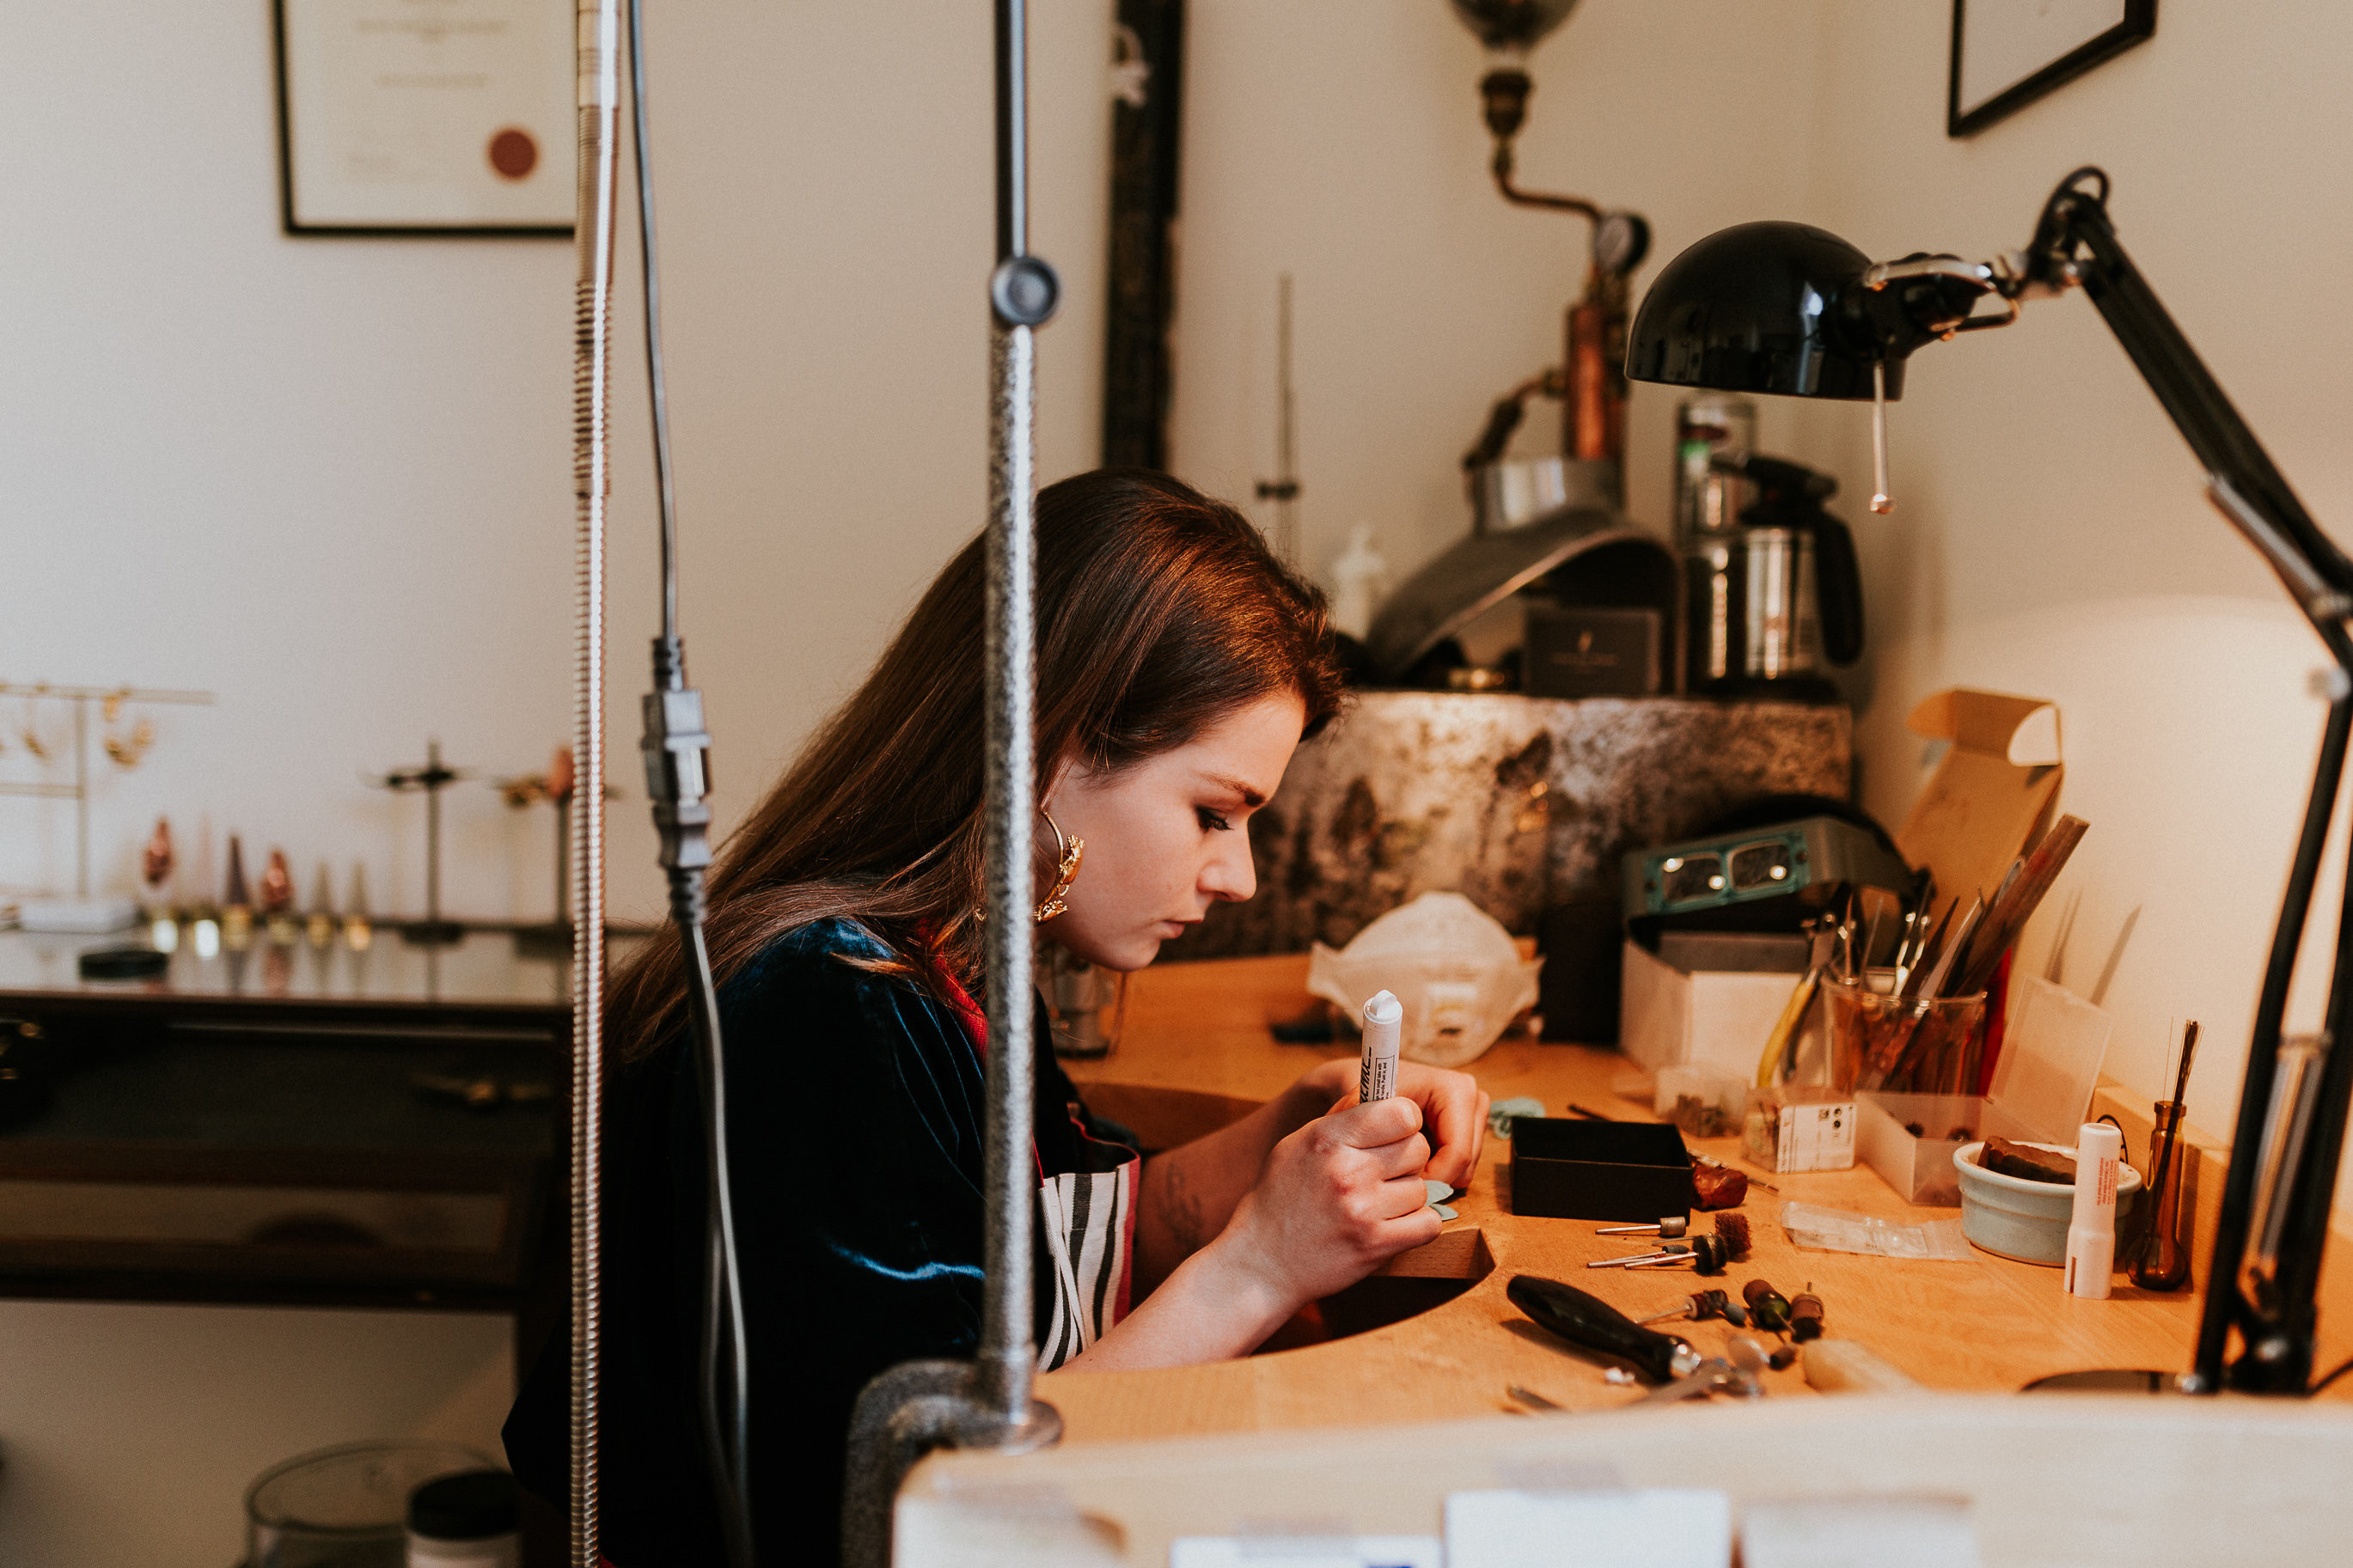 LEARN TO MAKE YOUR OWN JEWELLERY